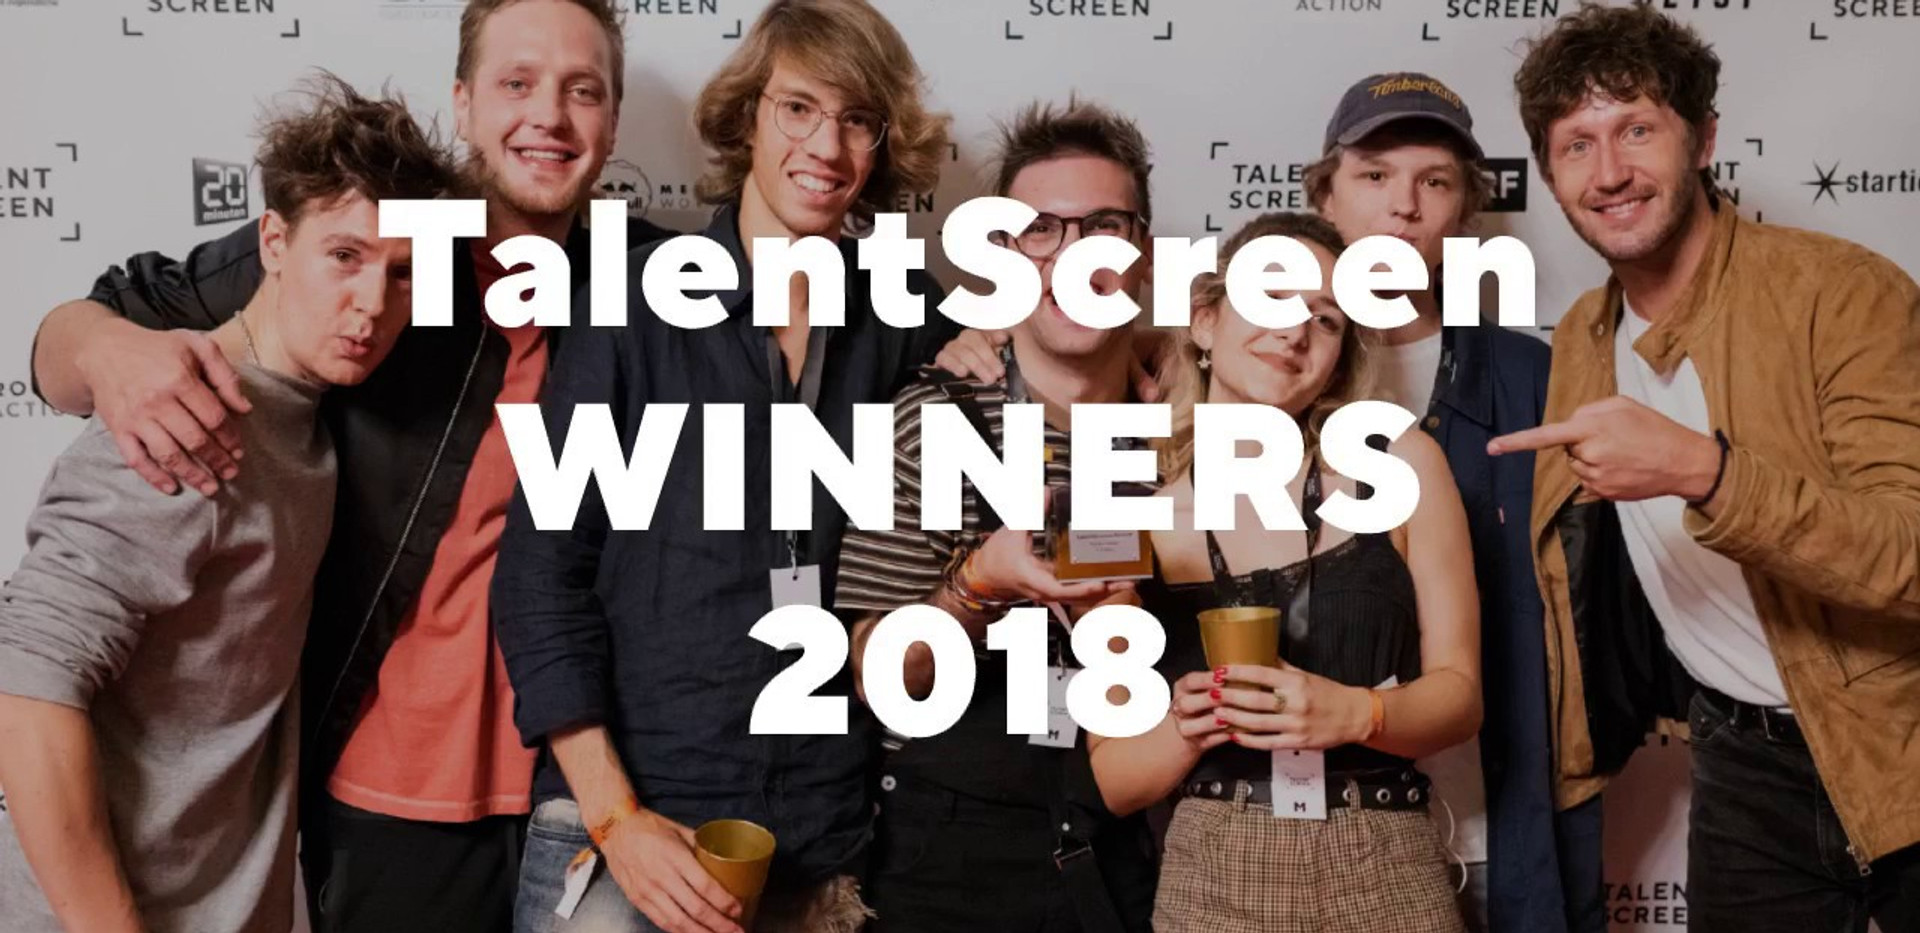 TalentScreen Winners 2018